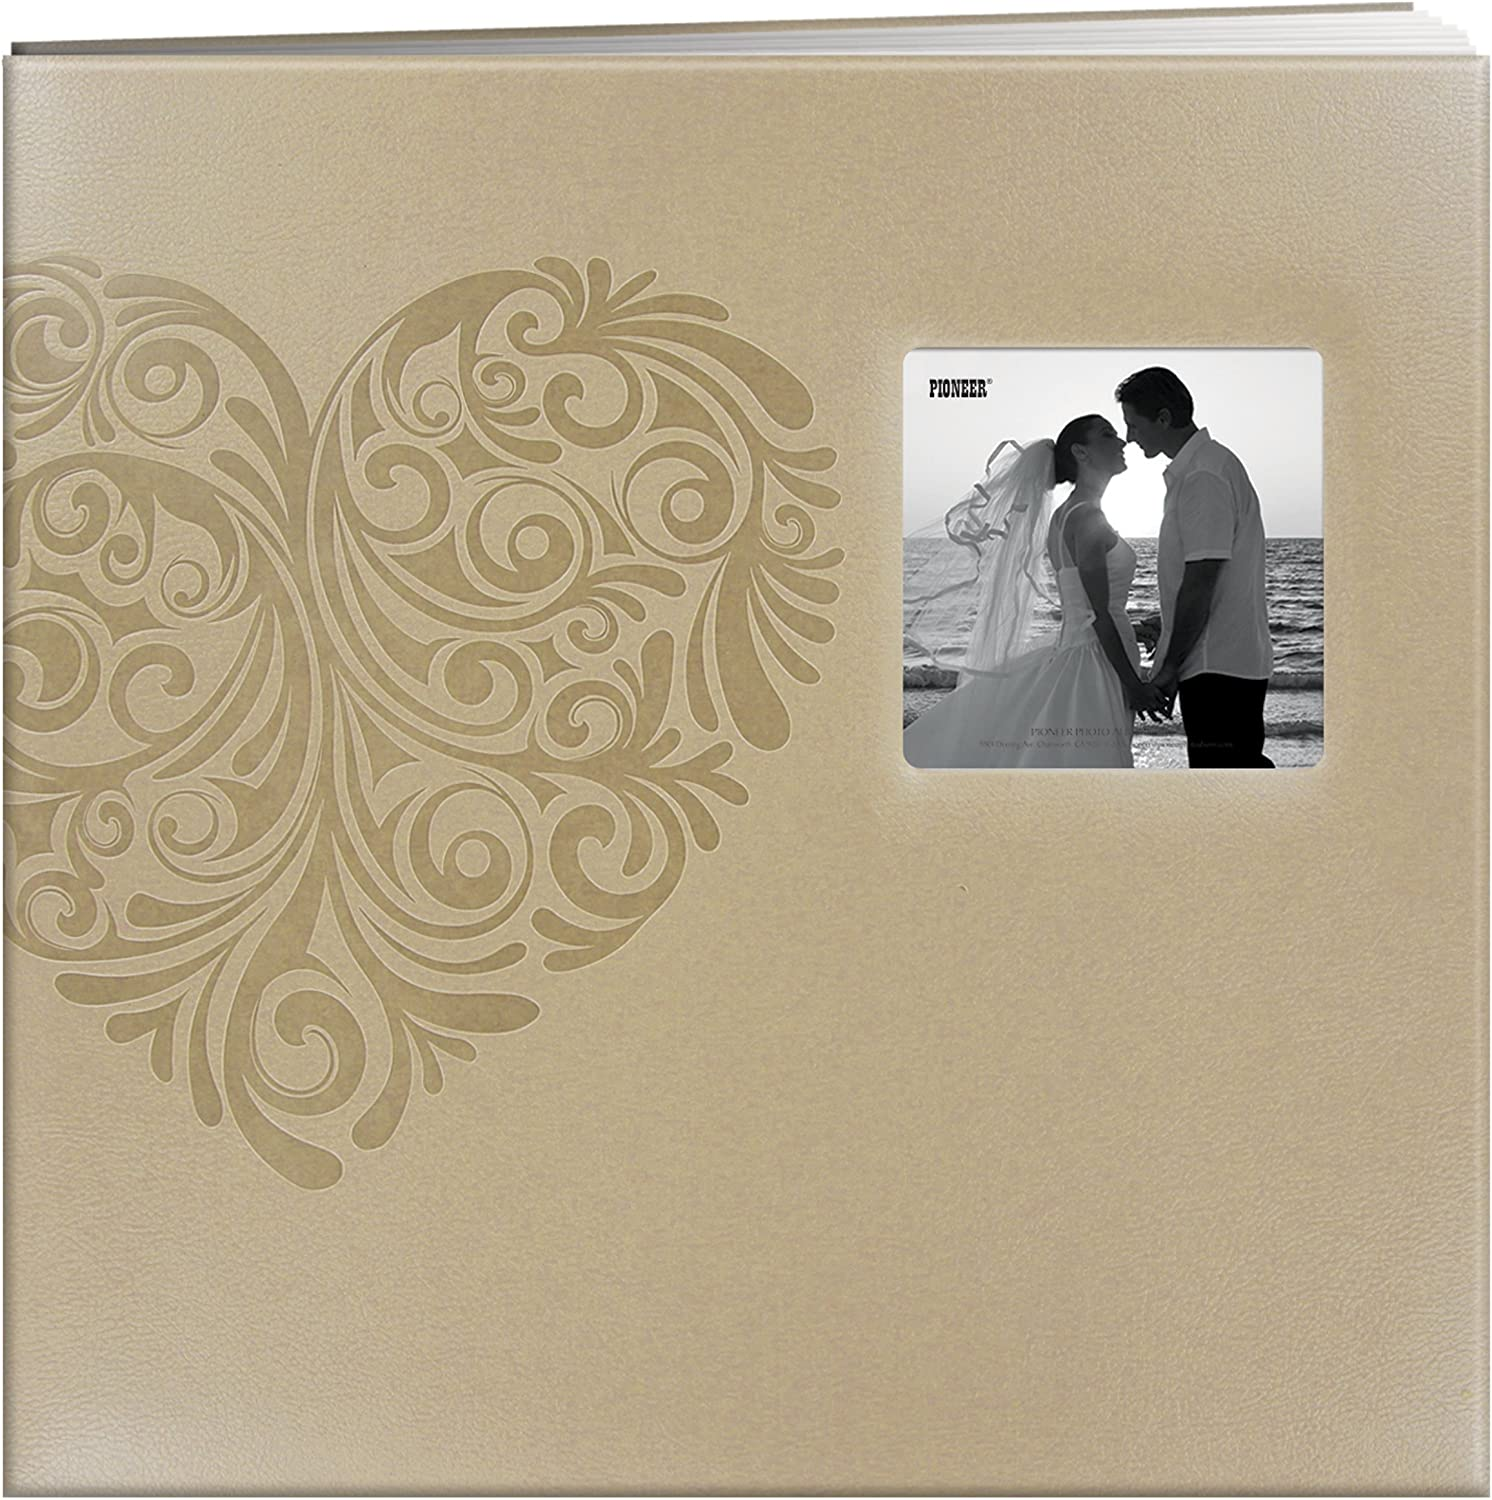 An image of a scrapbook photo album in leatherette frame cover with a heart intricate print at the front. .